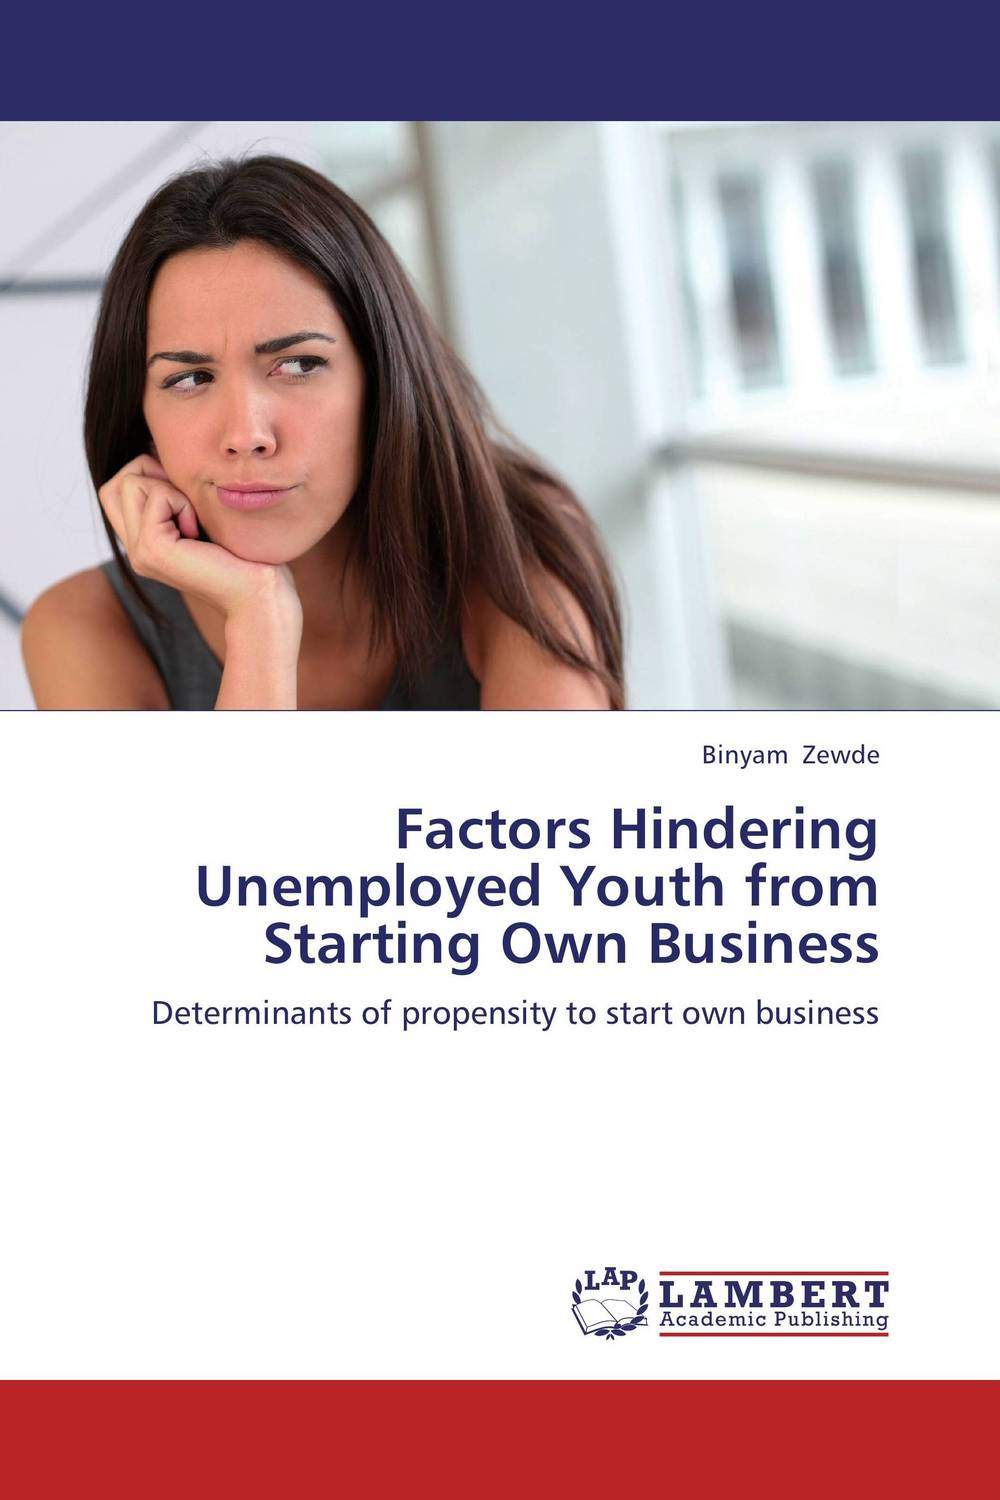 Factors Hindering Unemployed Youth from Starting Own Business